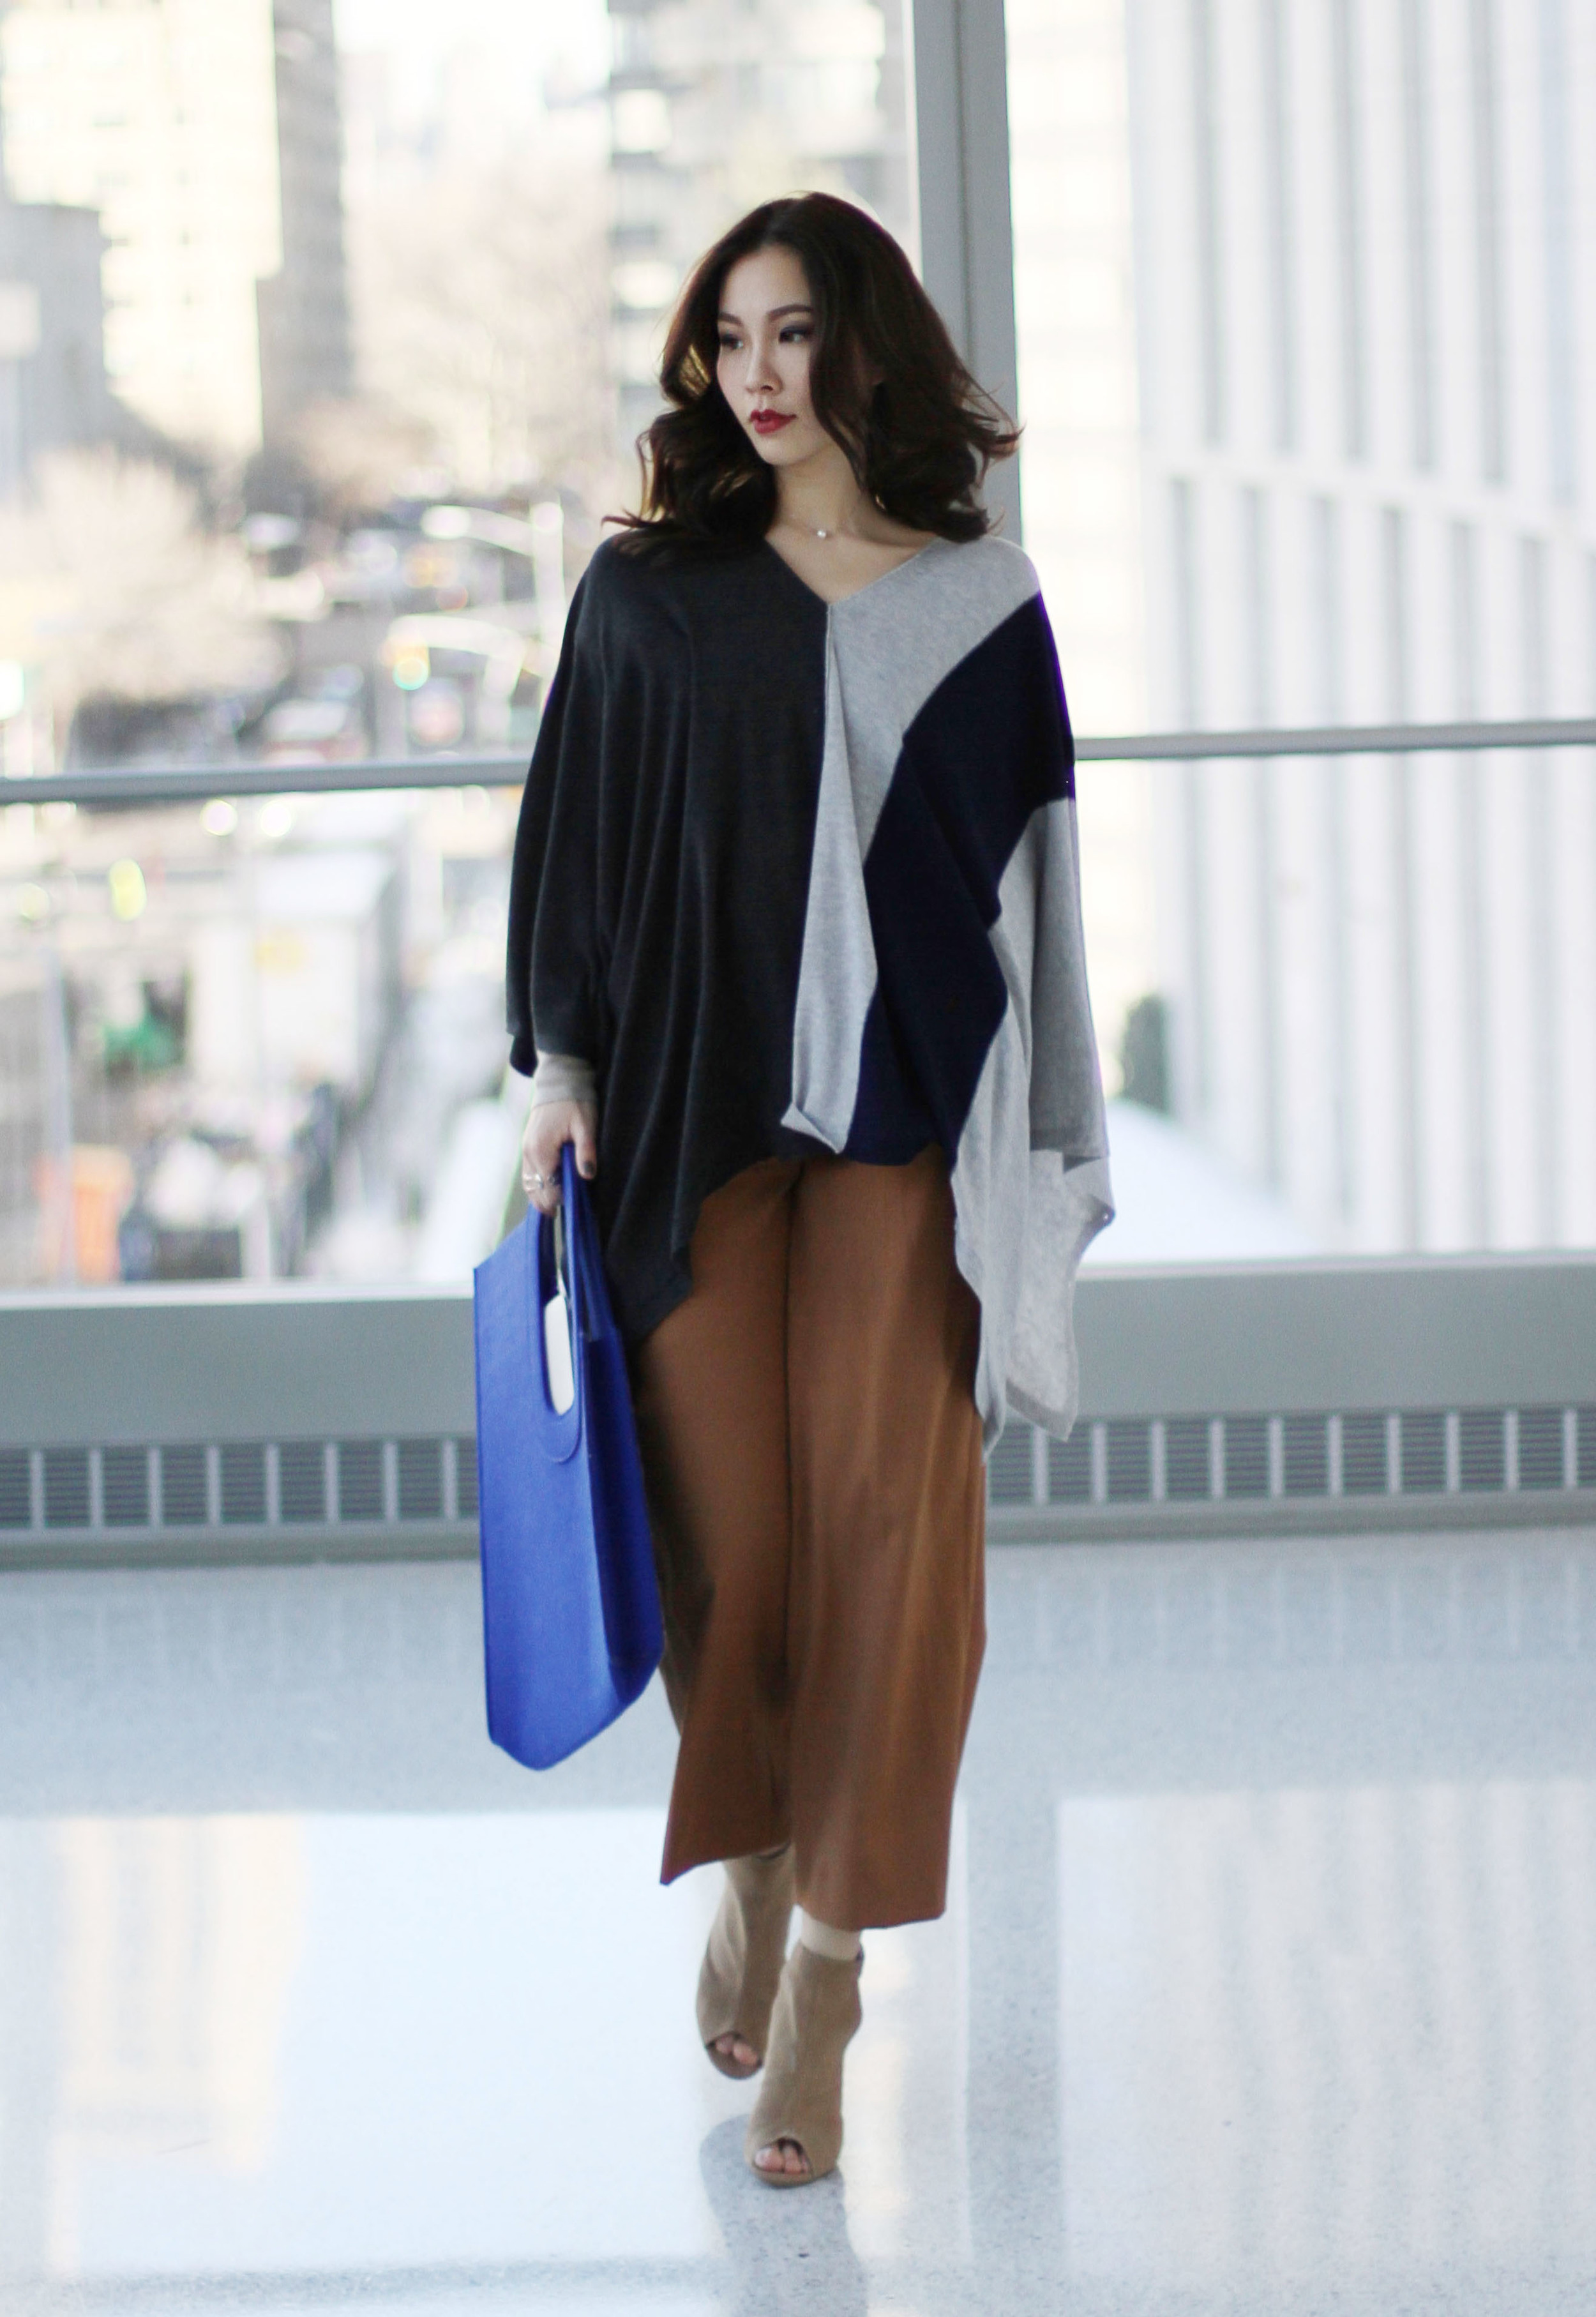 jia collection scarf top 3.jpg